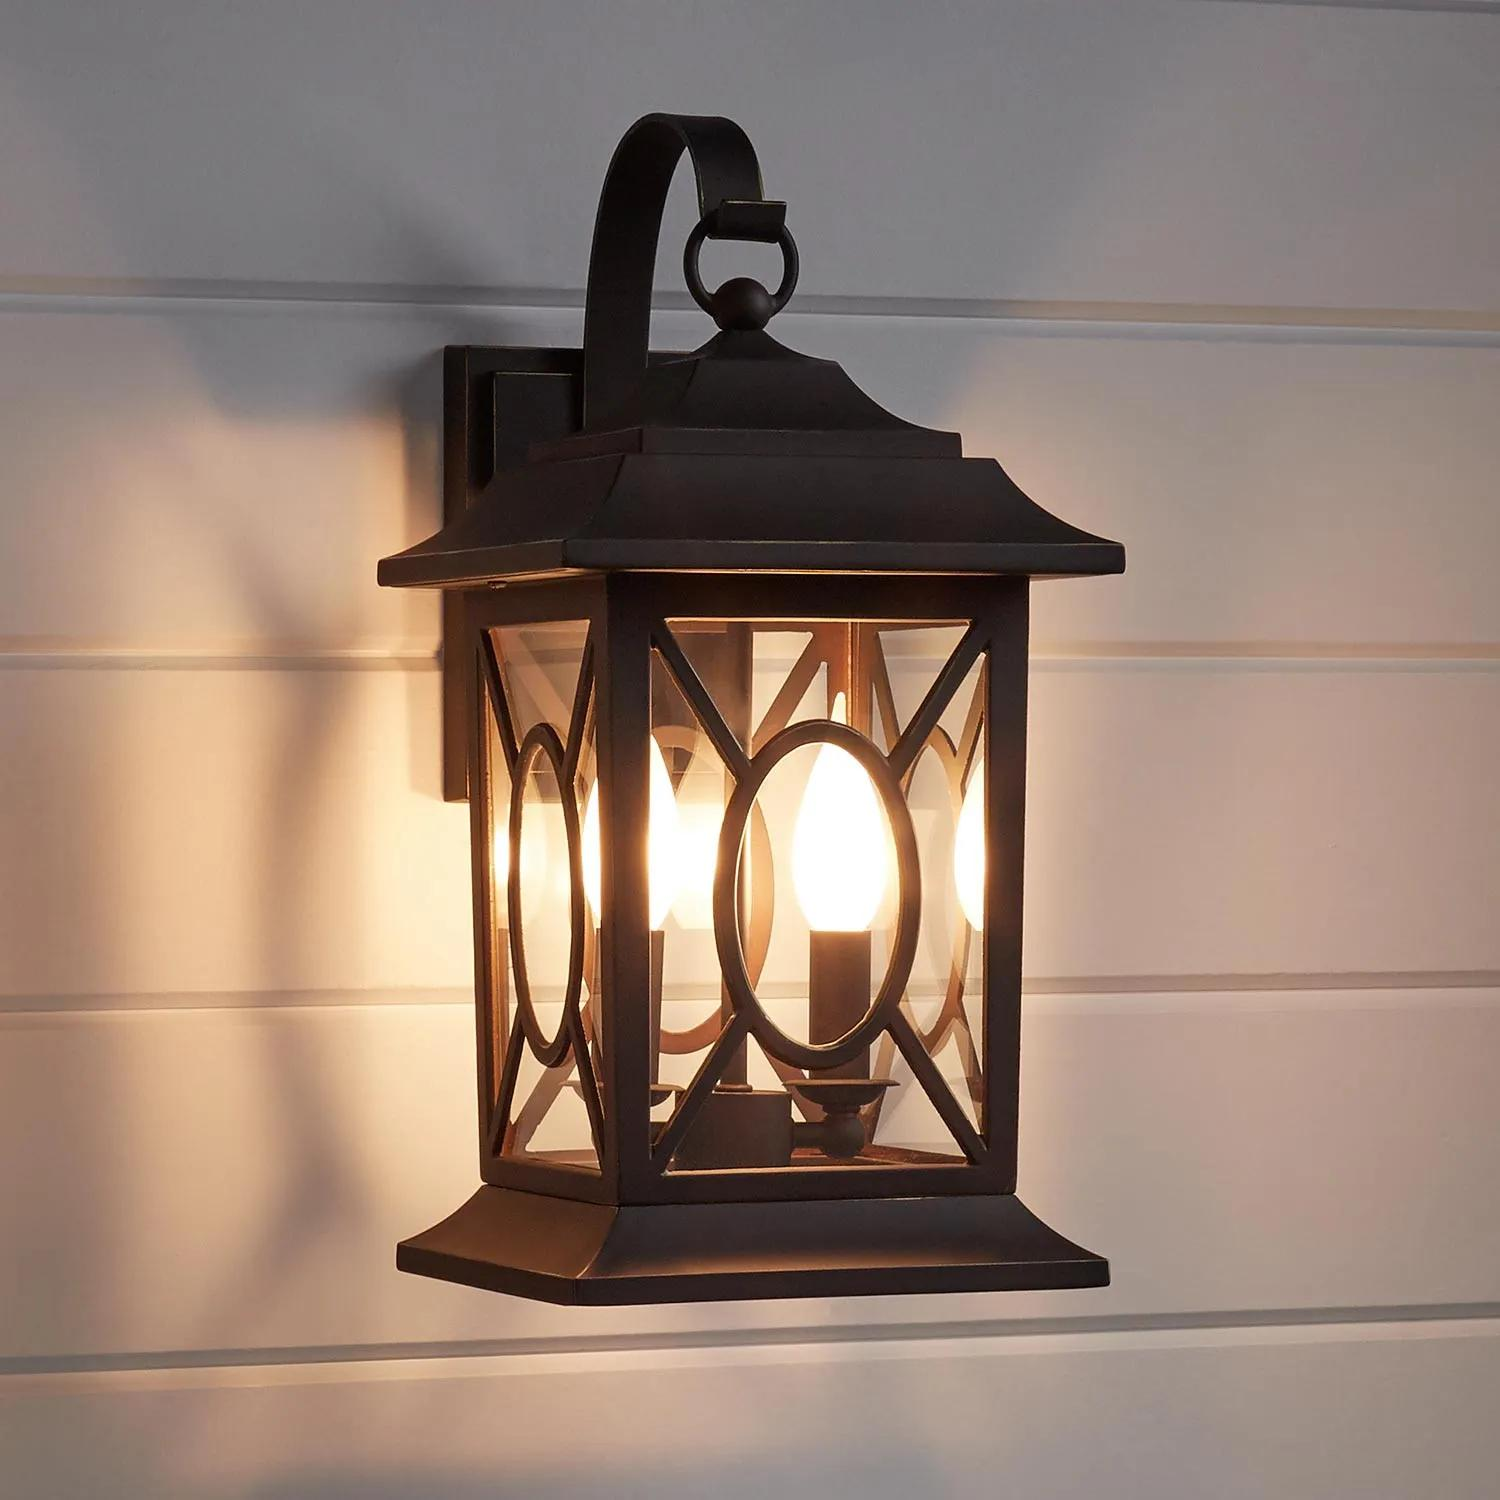 Kingston Manor Dark Bronze Outdoor 2 Light Candelabra Wall Sconce Outdoor Lighting Lighting